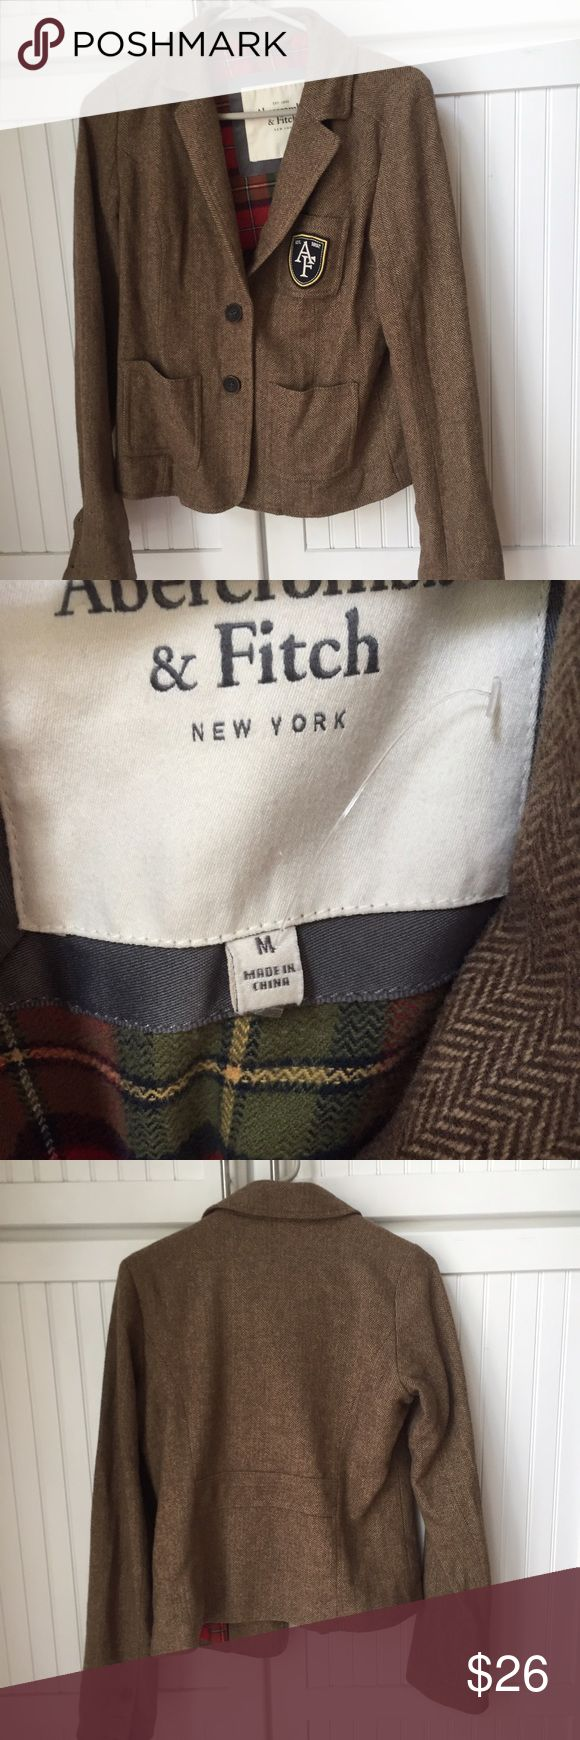 A&F tweed blazer Tweed blazer with Plaid lining from Abercrombie and Fitch / worn only once! In brand new condition / feel free to ask questions or make an offer! 😊 Abercrombie & Fitch Jackets & Coats Blazers